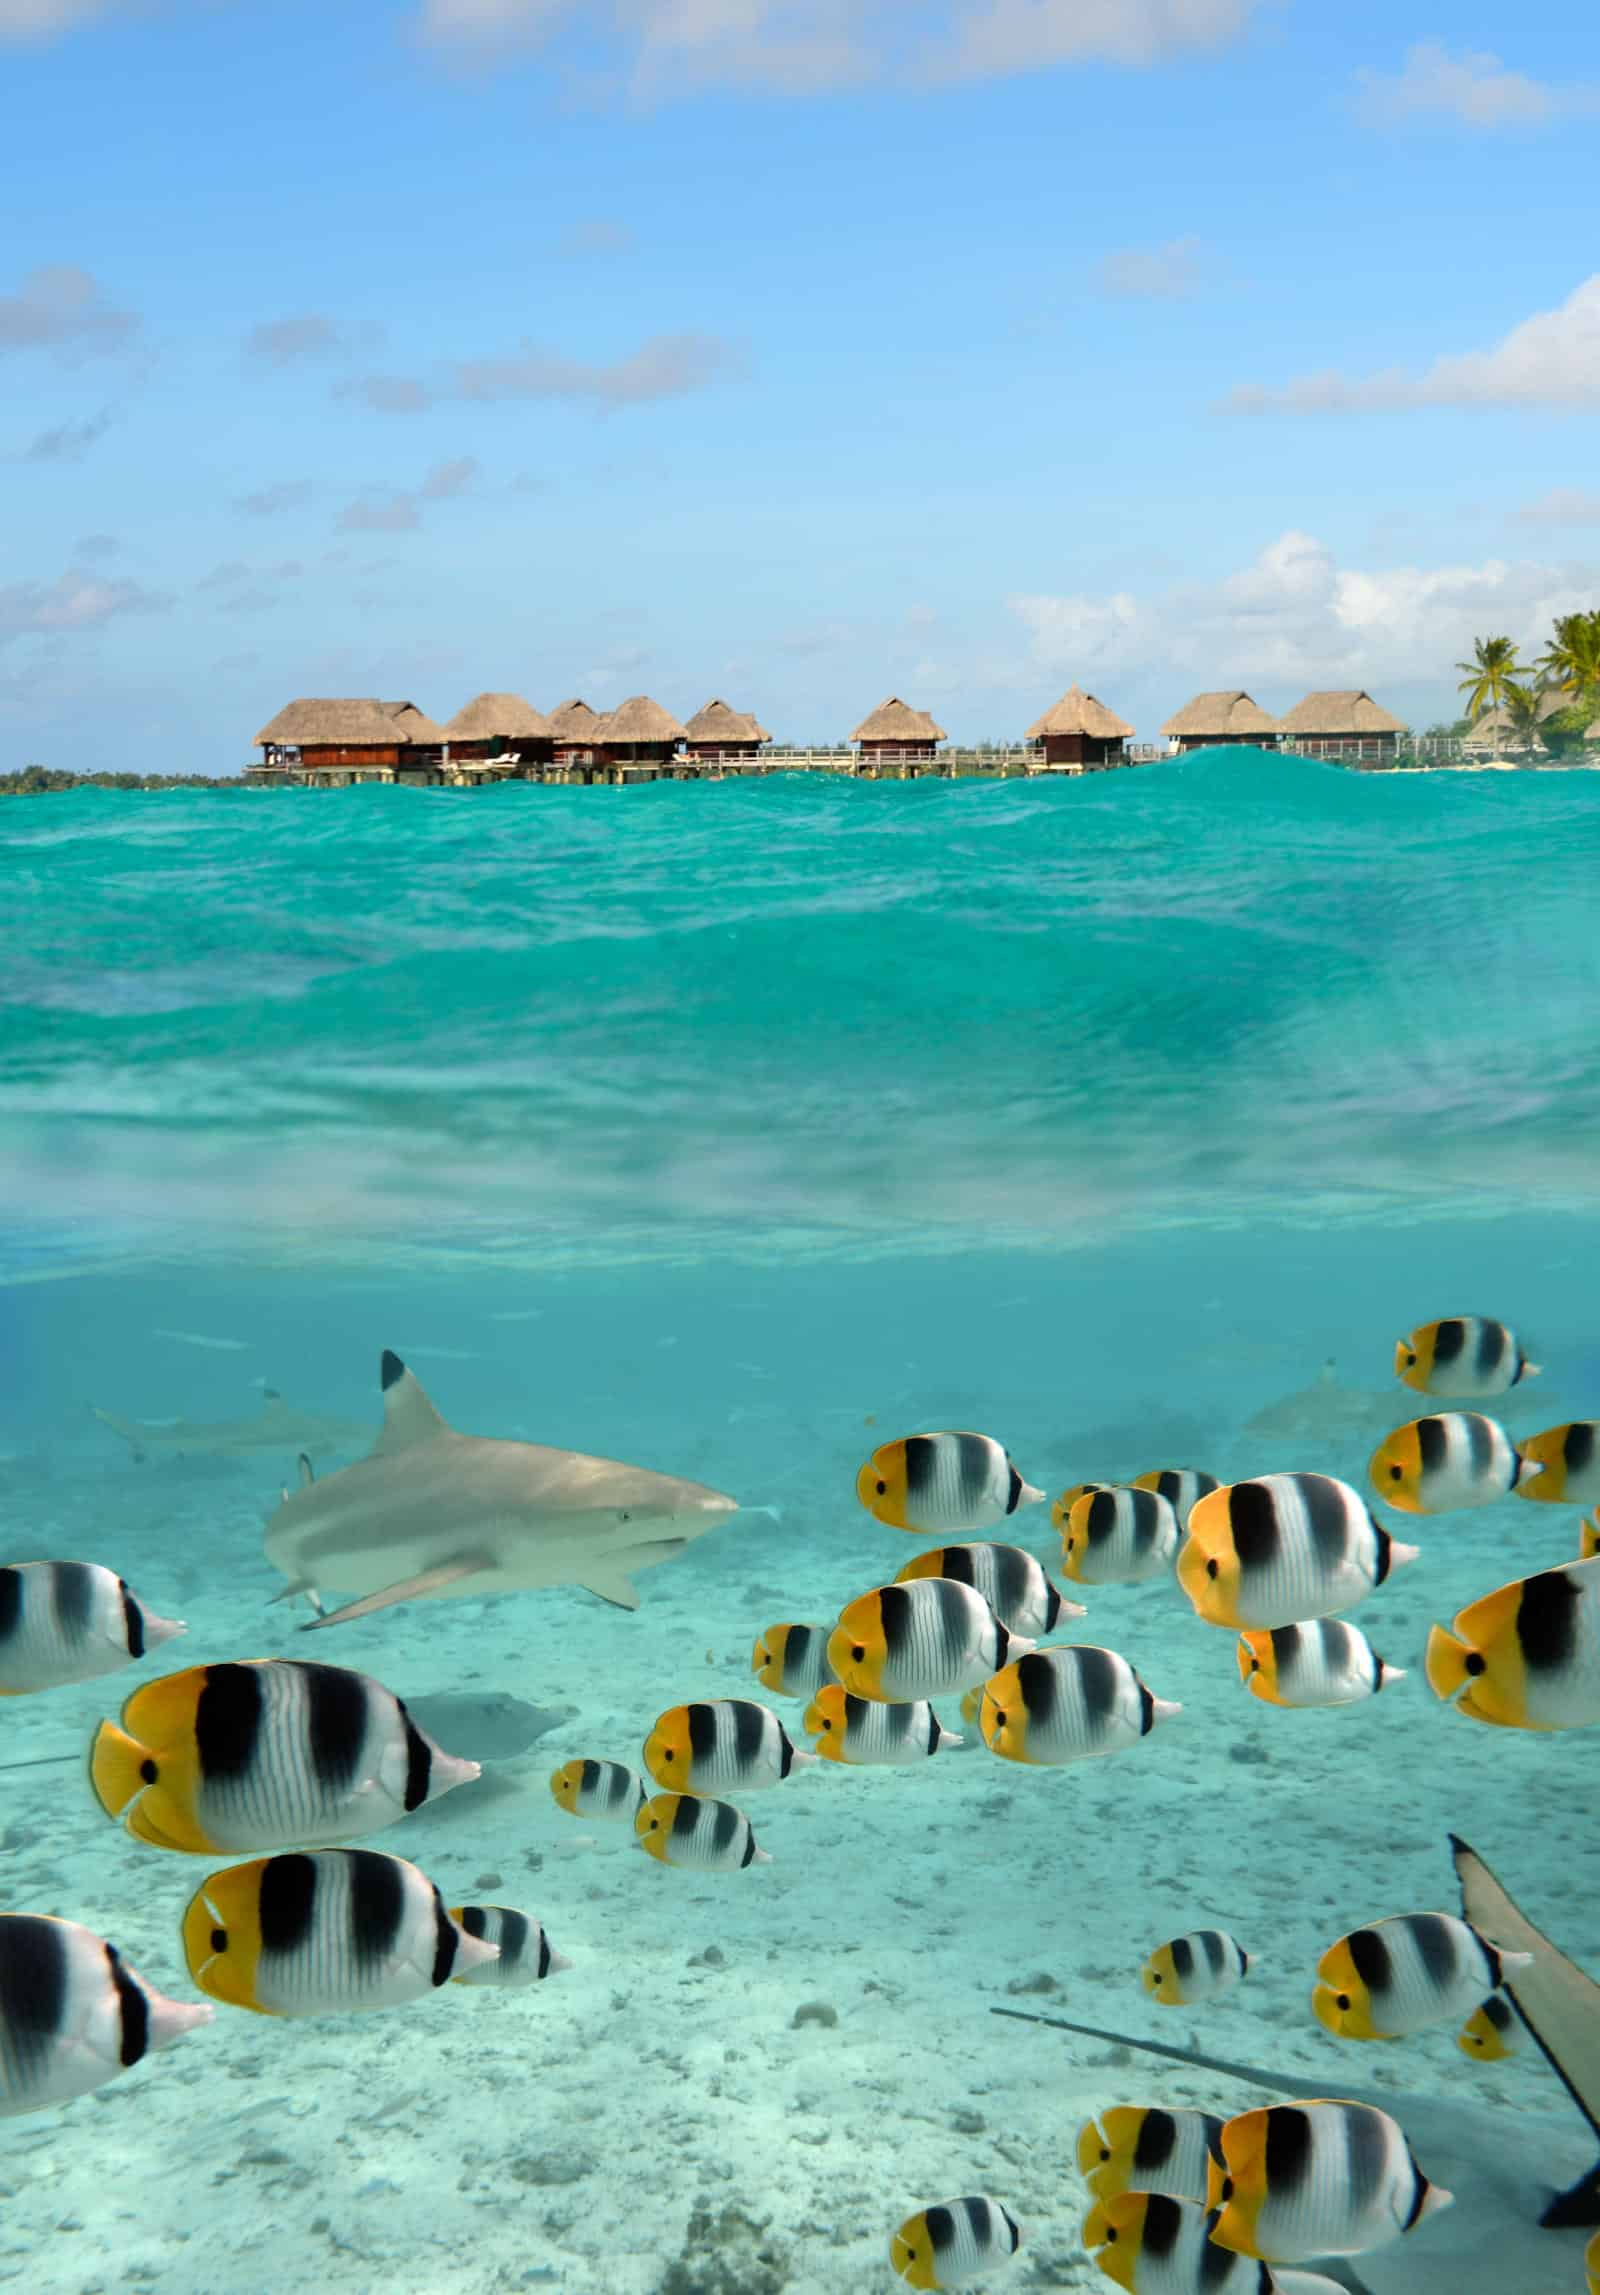 What has the best snorkelling Bora Bora or Moorea - Shark and butterfly fish at Bora Bora